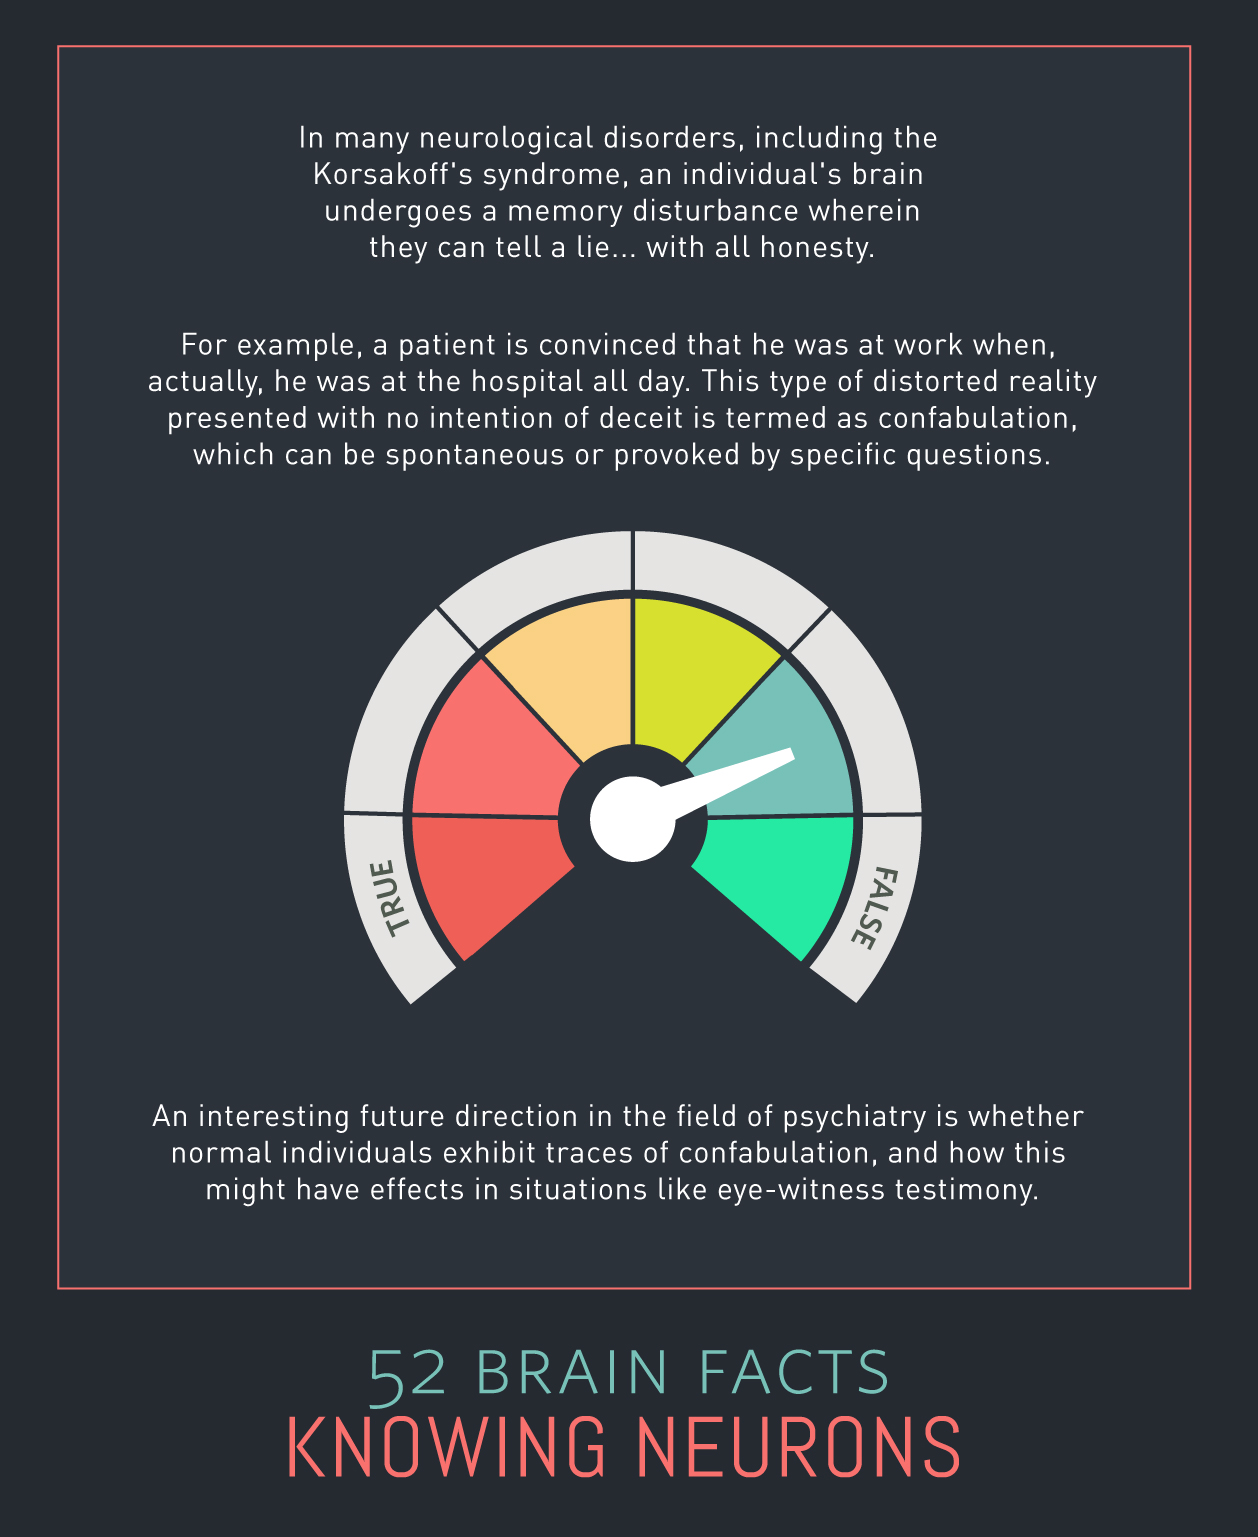 Myth or Fact? The brain can form honest lies.